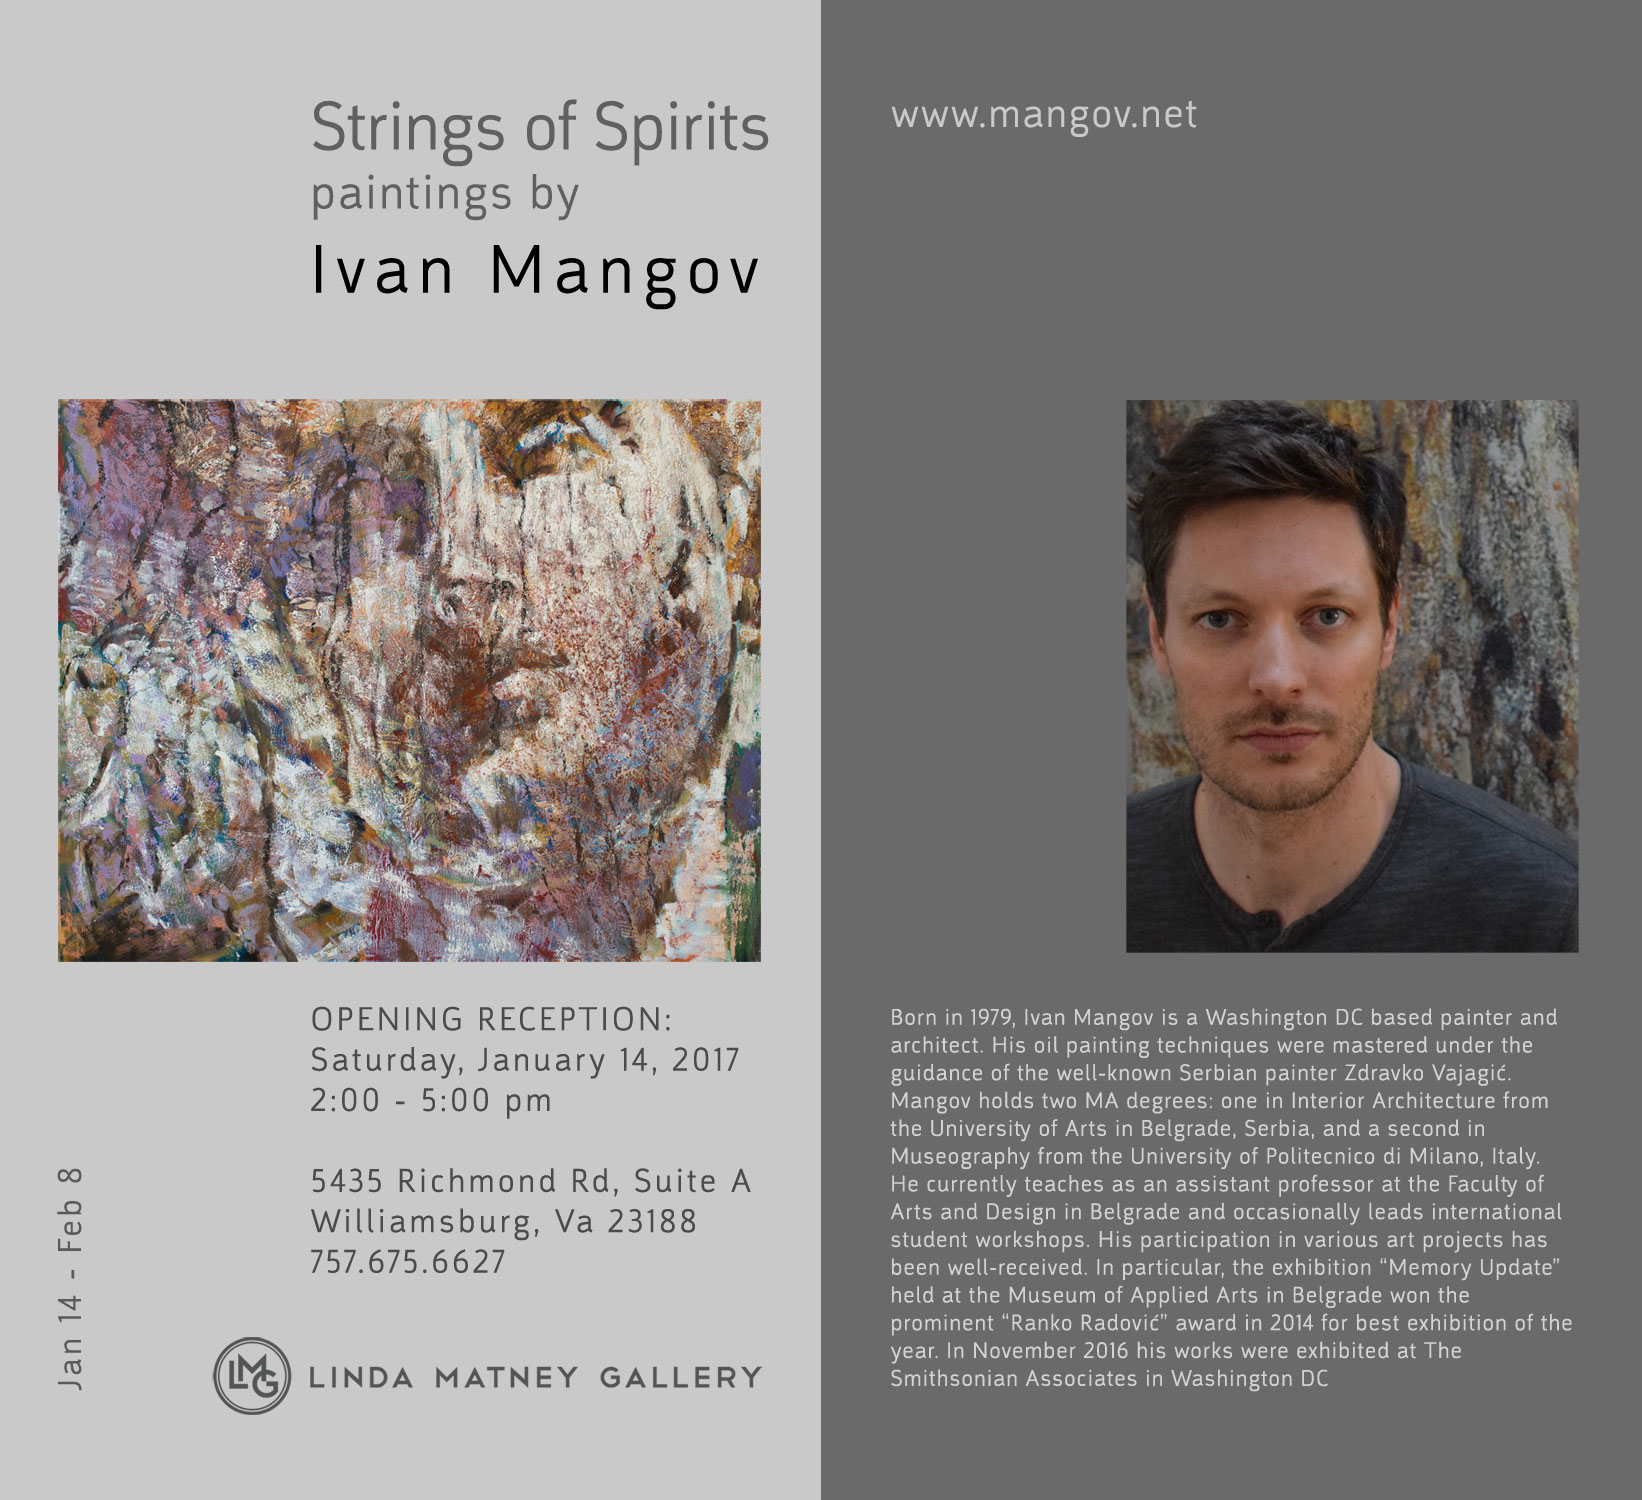 """Washington D.C. based painter and architect Ivan Mangov creates oil on canvas paintings using a complex technique of multilayered underpainting. After capturing with a camera all the stages of his work, he creates videos, that aim to provide a quick insight into a slow and gradual process of painting that takes many months.    Thanks to this uncommon technique he is able to create strata composed of rich textures with strong coloristic features. Depicted characters that emerge and disappear gradually from and into an abstract matter are going through changes that occur in nature: processes of creation, corrosion, erosion and dissolution. Through daring underpainting and radical transformations, distinctive portraits of time are created. They demonstrate the disappearance of ideals, the form that crumbles only to be restored to its original condition - the realm of shapelessness.      Bio      Born in 1979, Ivan Mangov is a Washington DC based painter and architect. His oil painting techniques were mastered under the guidance of the well-known Serbian painter Zdravko Vajagić. Mangov holds two MA degrees: one in Interior Architecture from the University of Arts in Belgrade, Serbia, and a second in Museography from the University of Politecnico di Milano, Italy.    He currently teaches as an assistant professor at the Faculty of Arts and Design in Belgrade and occasionally leads international student workshops. His participation in various art projects has been well-received. In particular, the exhibition """"Memory Update"""" held at the Museum of Applied Arts in Belgrade won the prominent """"Ranko Radović"""" award in 2014 for best exhibition of the year. In November 2016 his works were exhibited at The Smithsonian Associates in Washington D.C."""